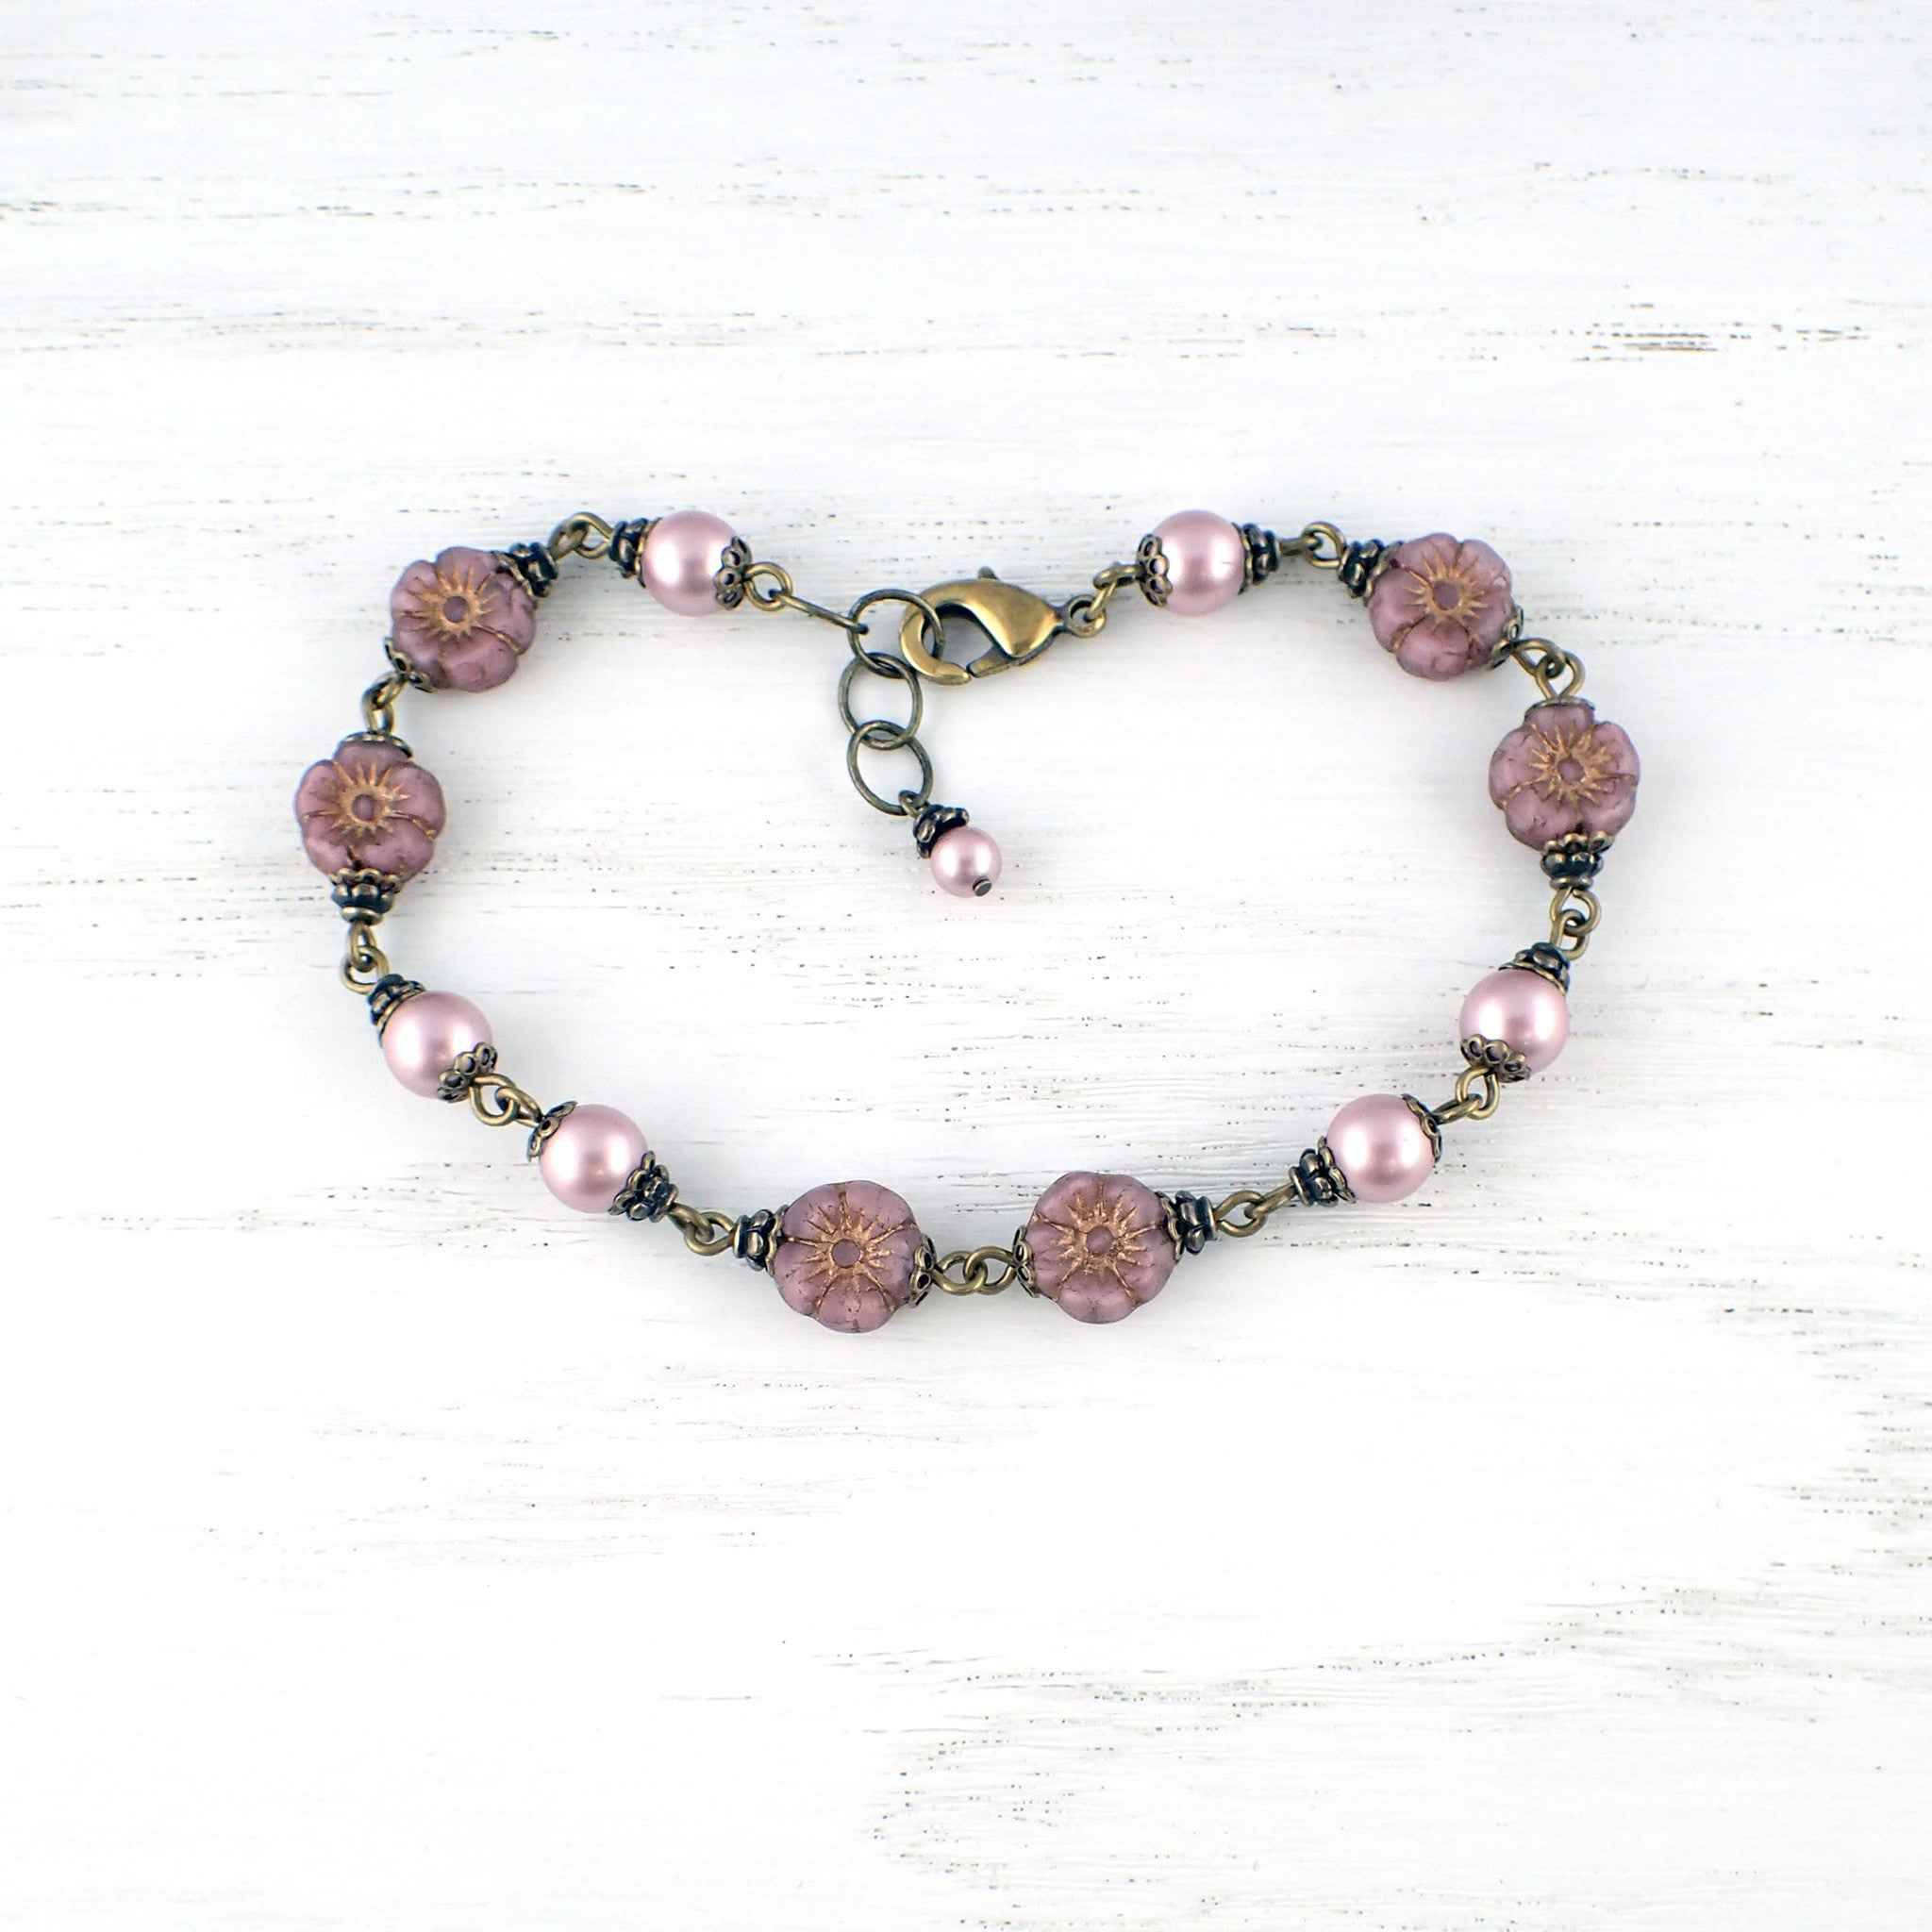 Powder Rose Flower and Swarovski Pearl Bracelet